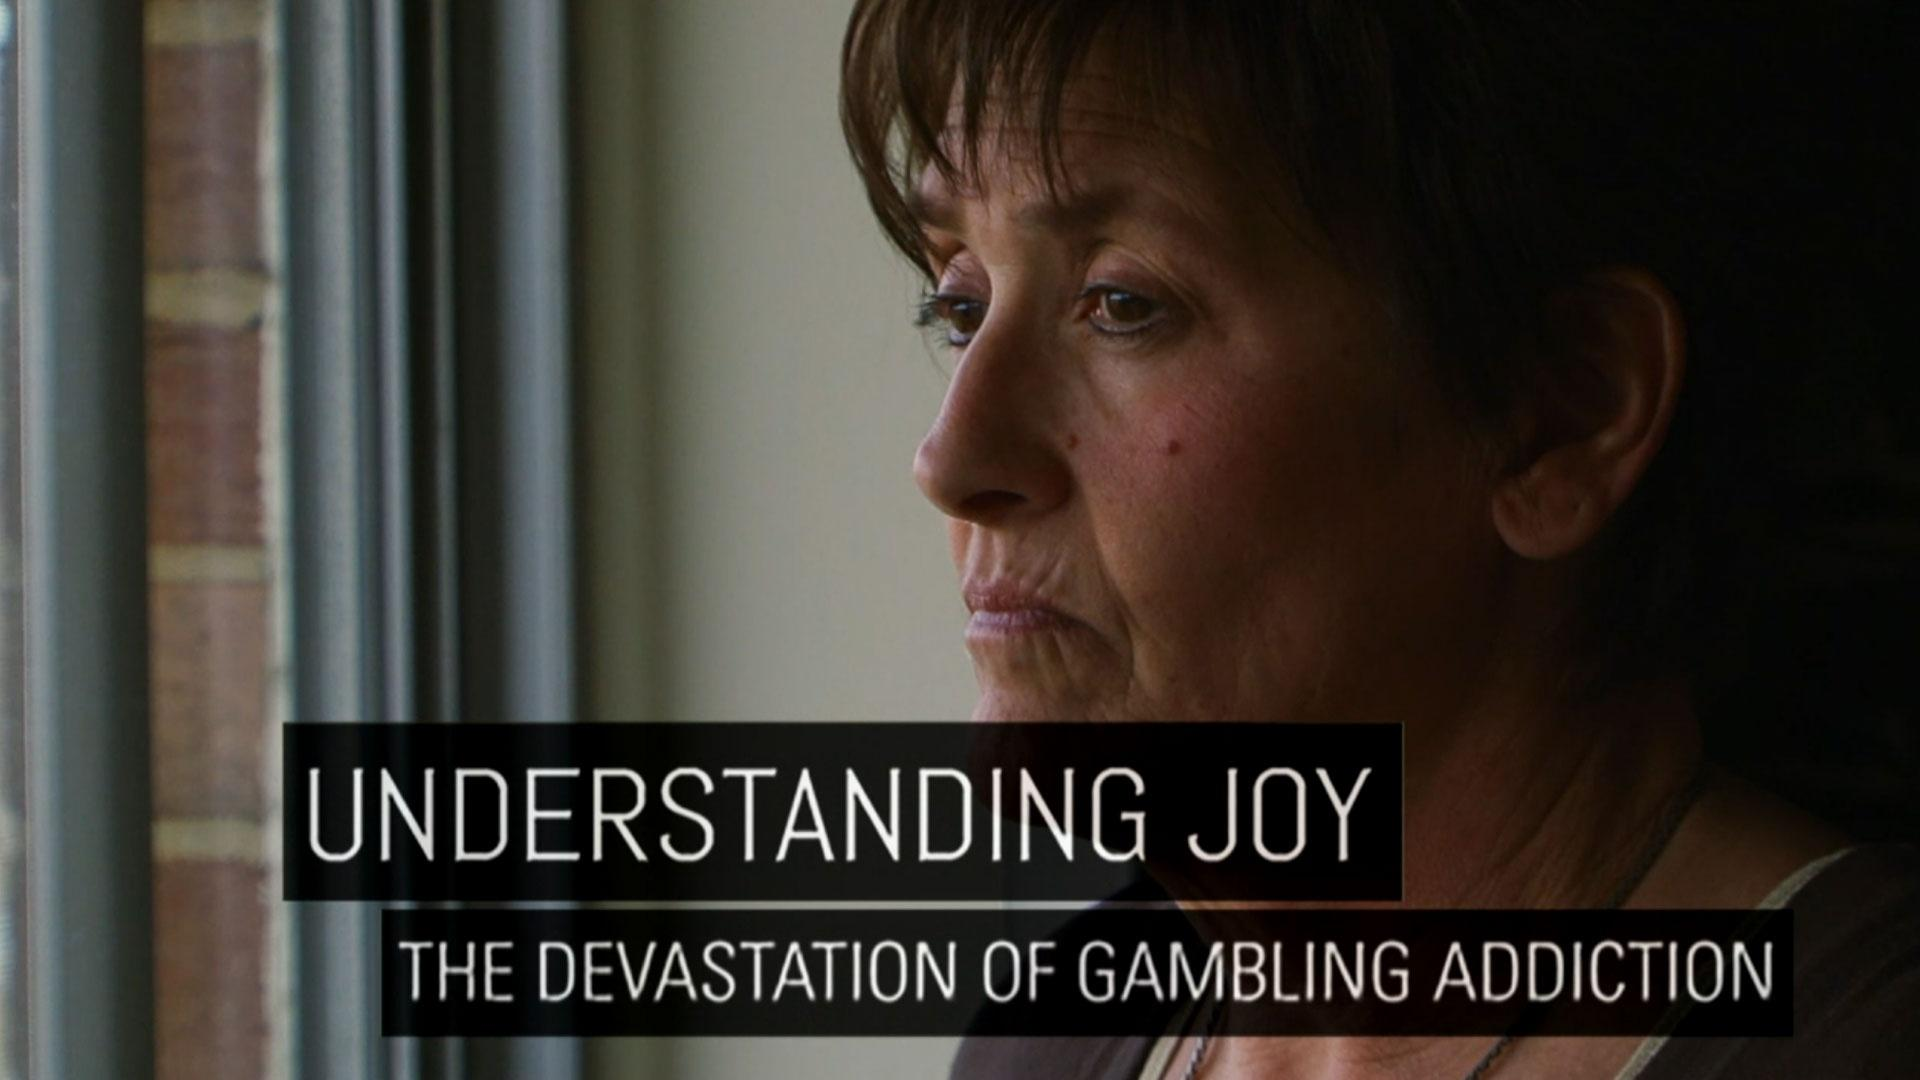 effects of being a gambling addict Problem gambling is a process addiction disorder that acts much like an addiction to drugs or alcohol does substance abuse also exacerbates the physical and psychological effects of gambling, increasing the severity of conditions such as heart disease, digestive problems, anxiety disorders.